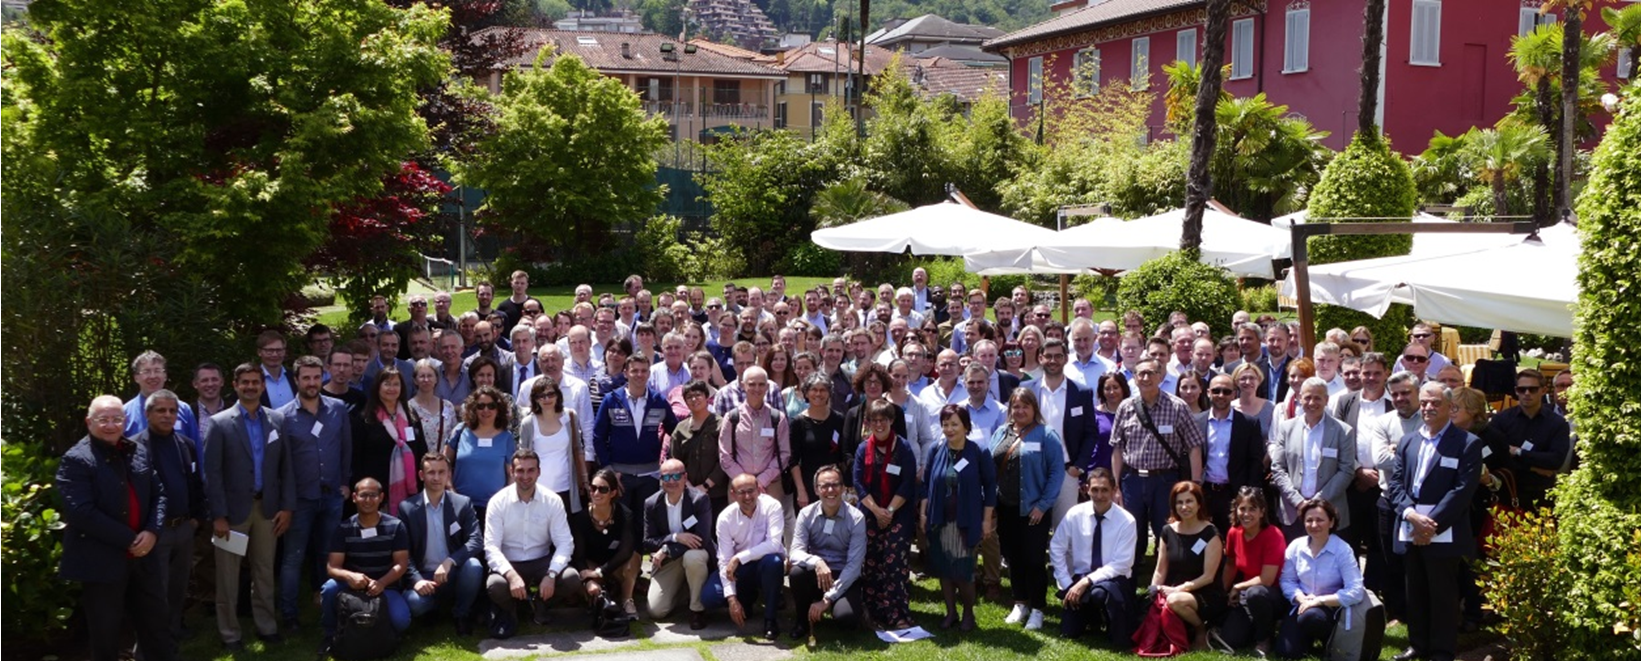 Participants of the Copernicus Emergency Management Service Annual Meeting, Stresa, Italy (Photo courtesy of Stéphane Ourevitch).